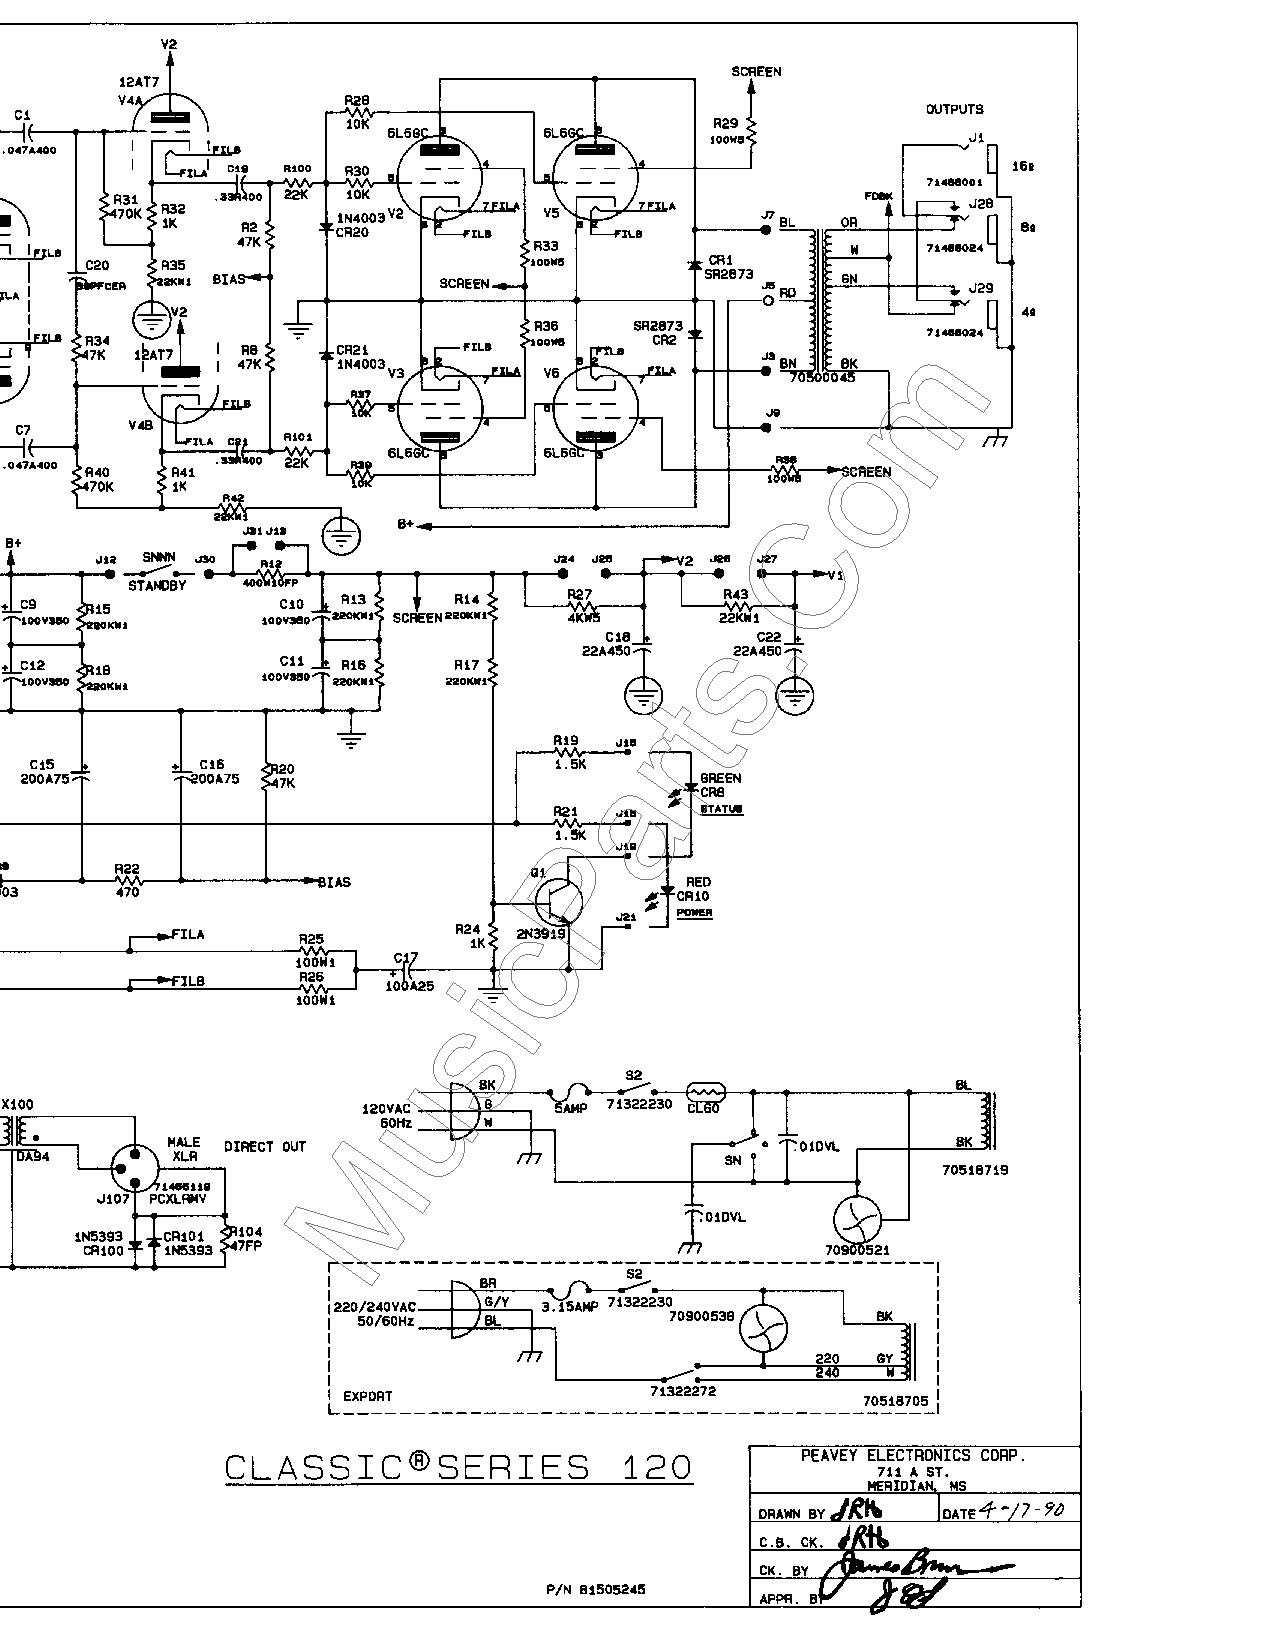 Peavey classic 120 mono pull two tubes? schematics included.-peavey-classic-120-mono-owners-service-schematics-page-008-jpg